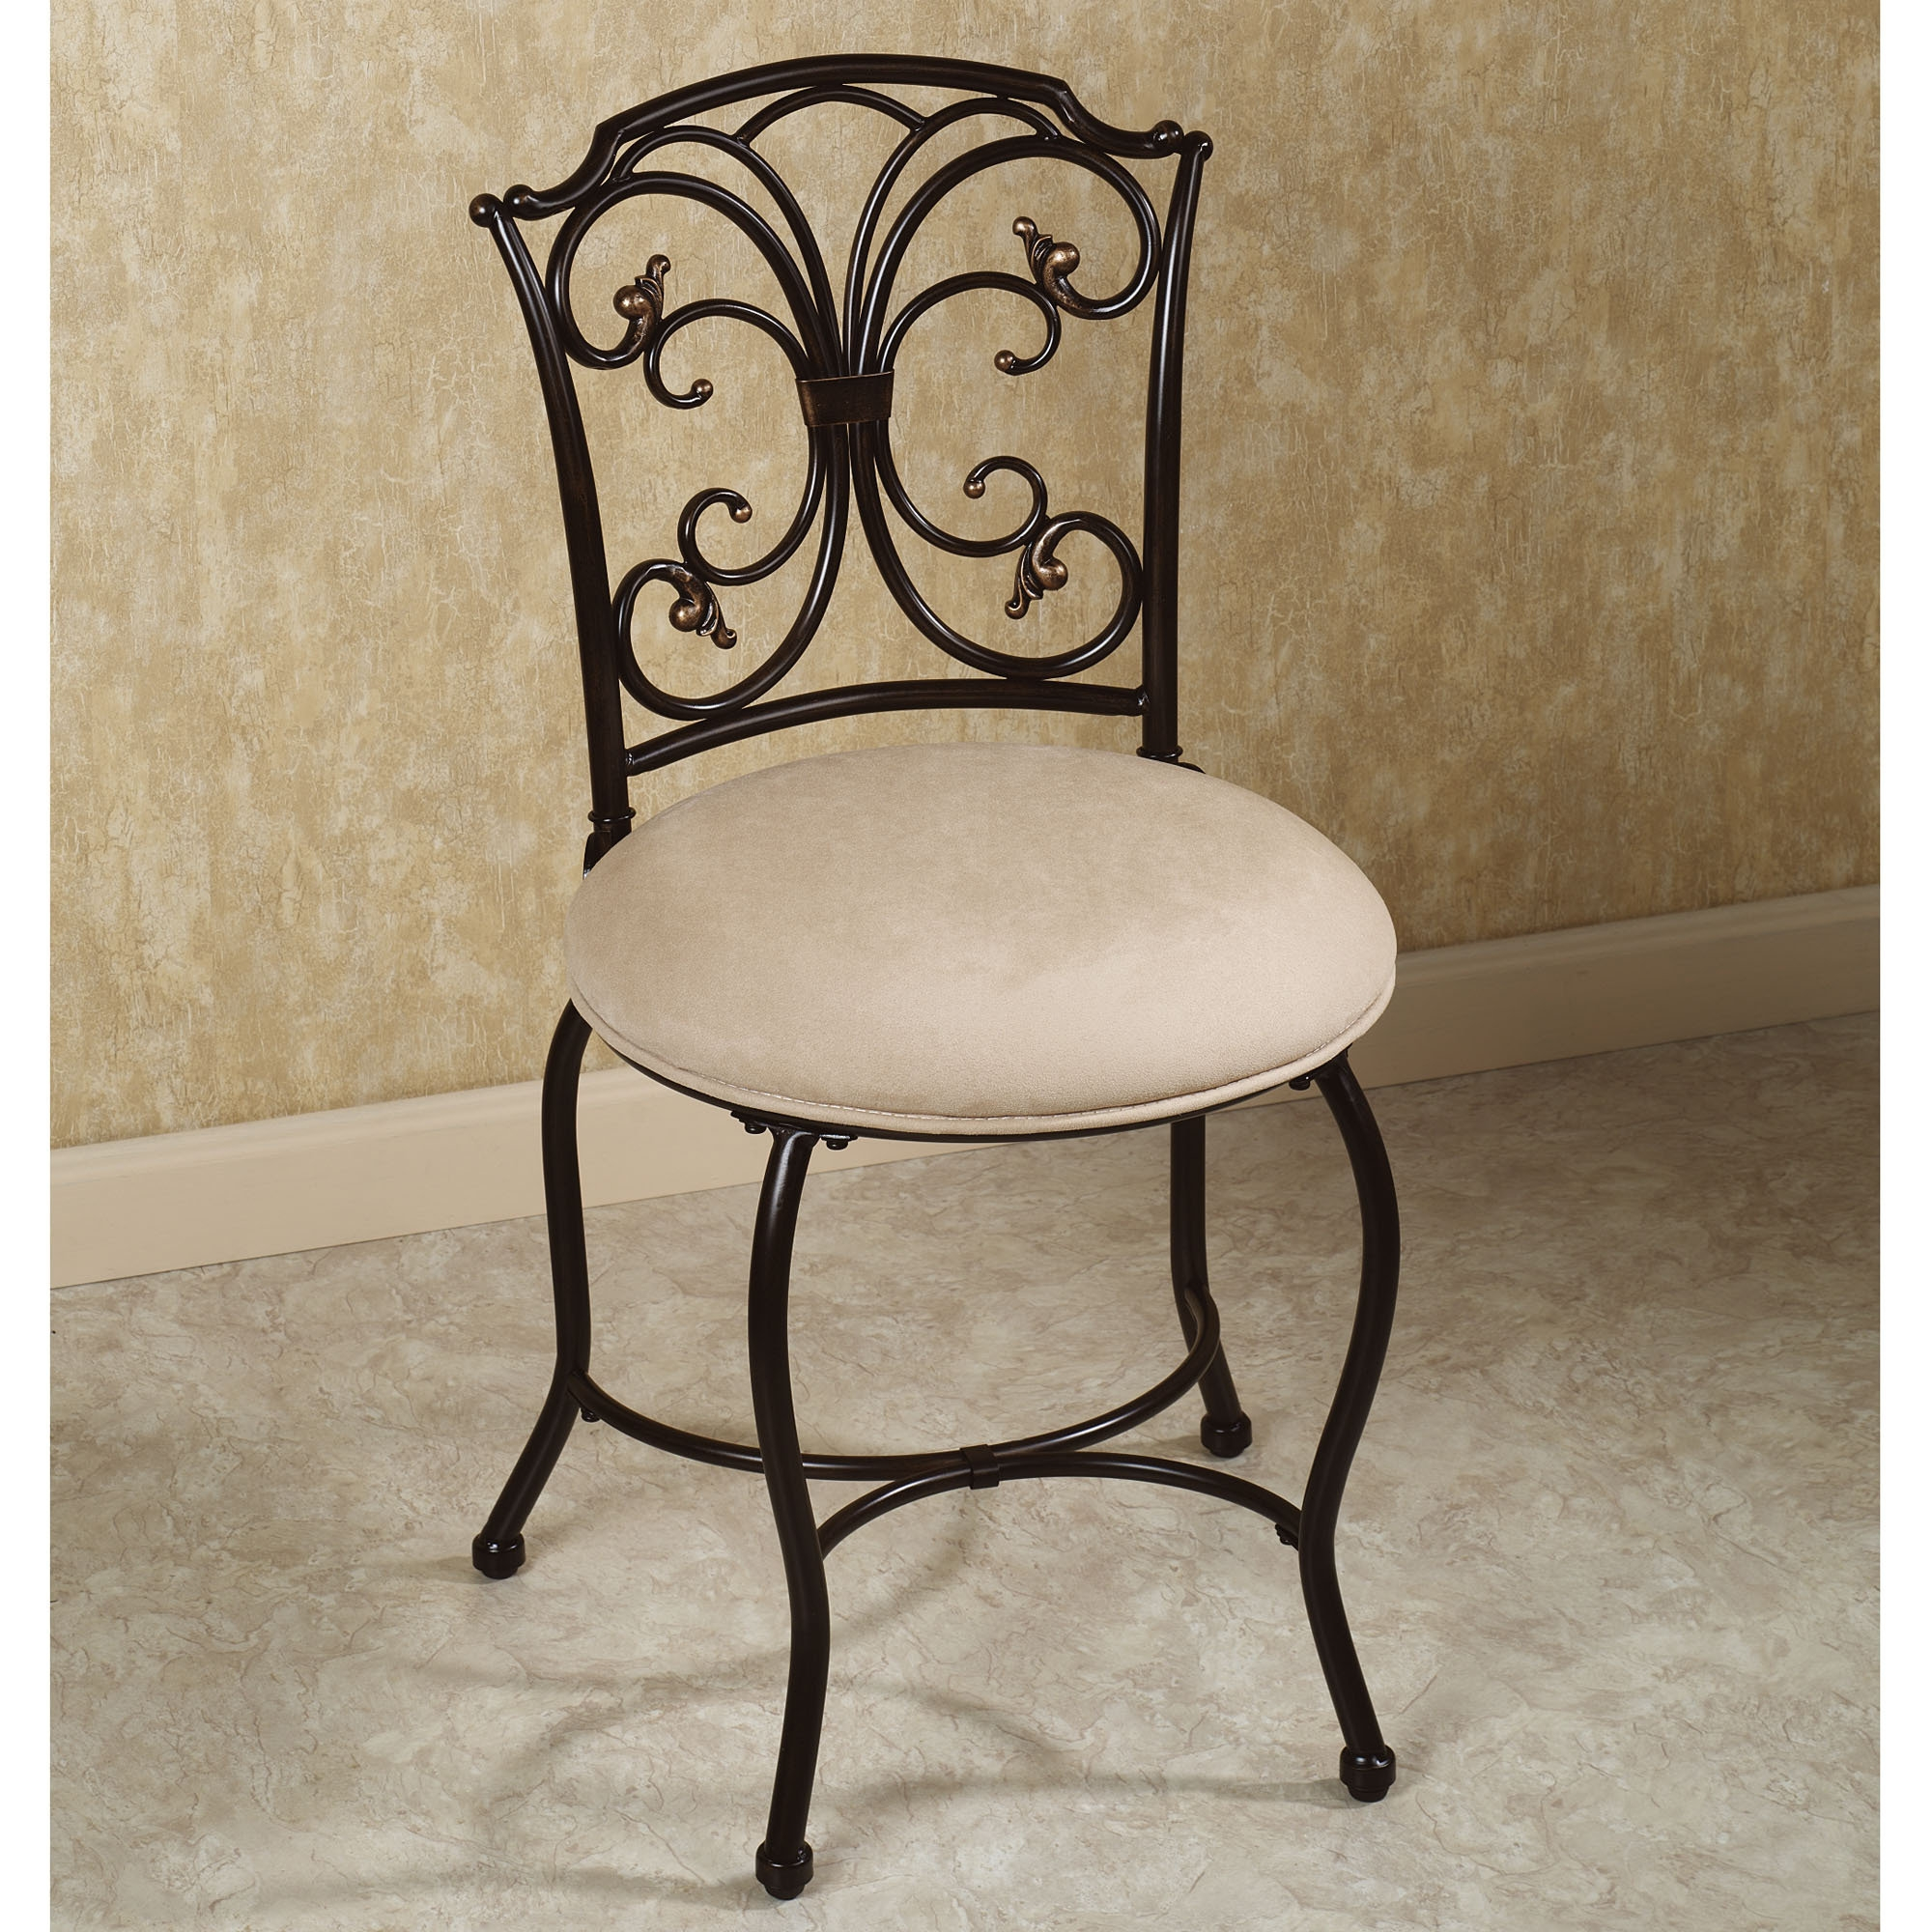 Upholstered Vanity Chairs For Bathroom